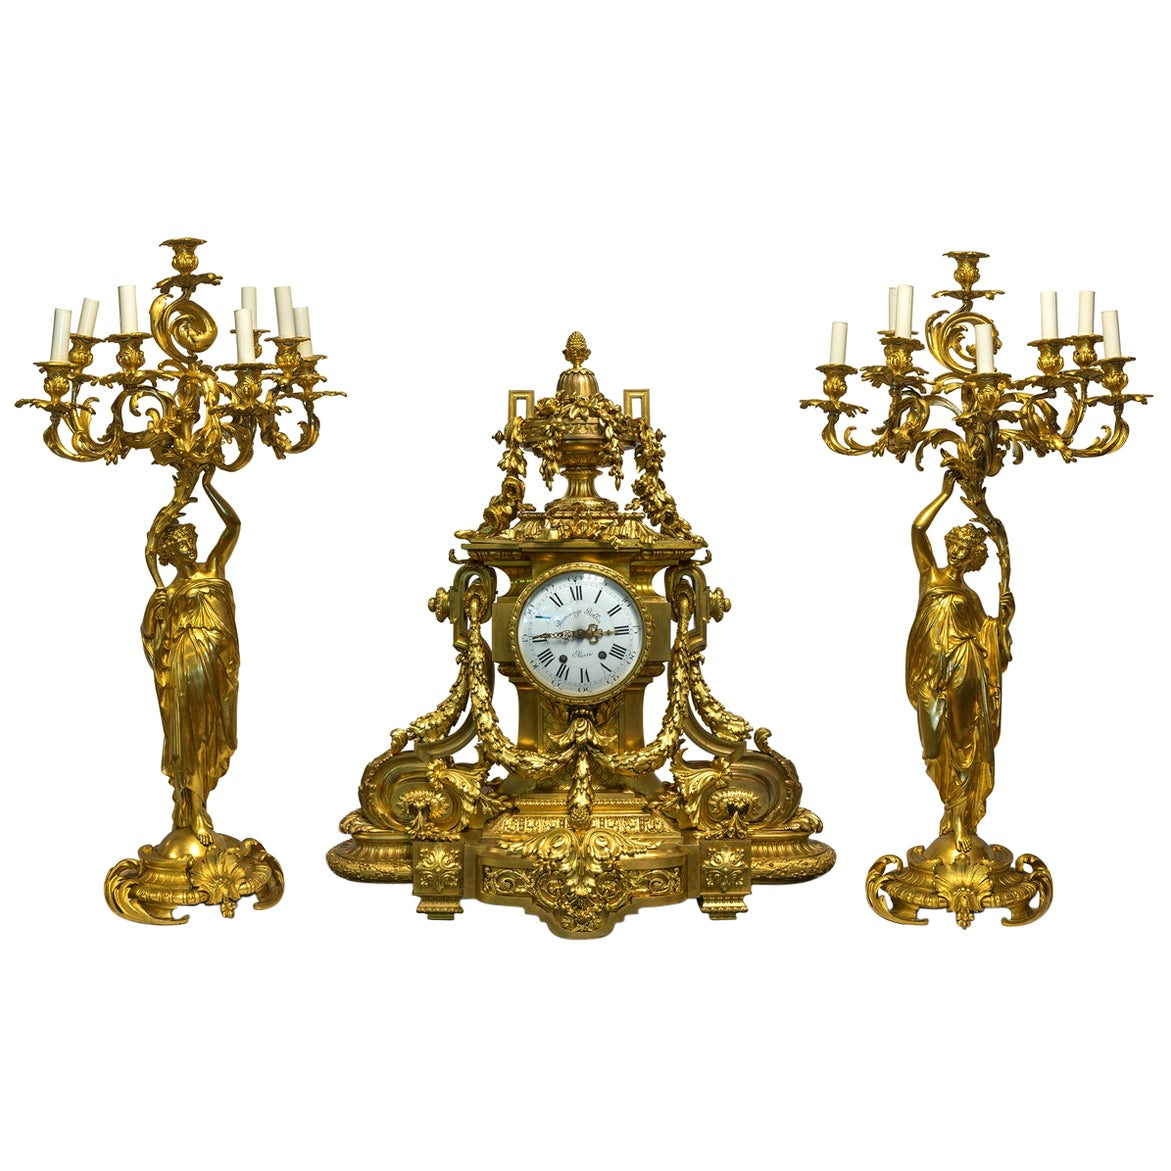 Monumental 19th Century French Three-Piece Ormolu Clock Garniture